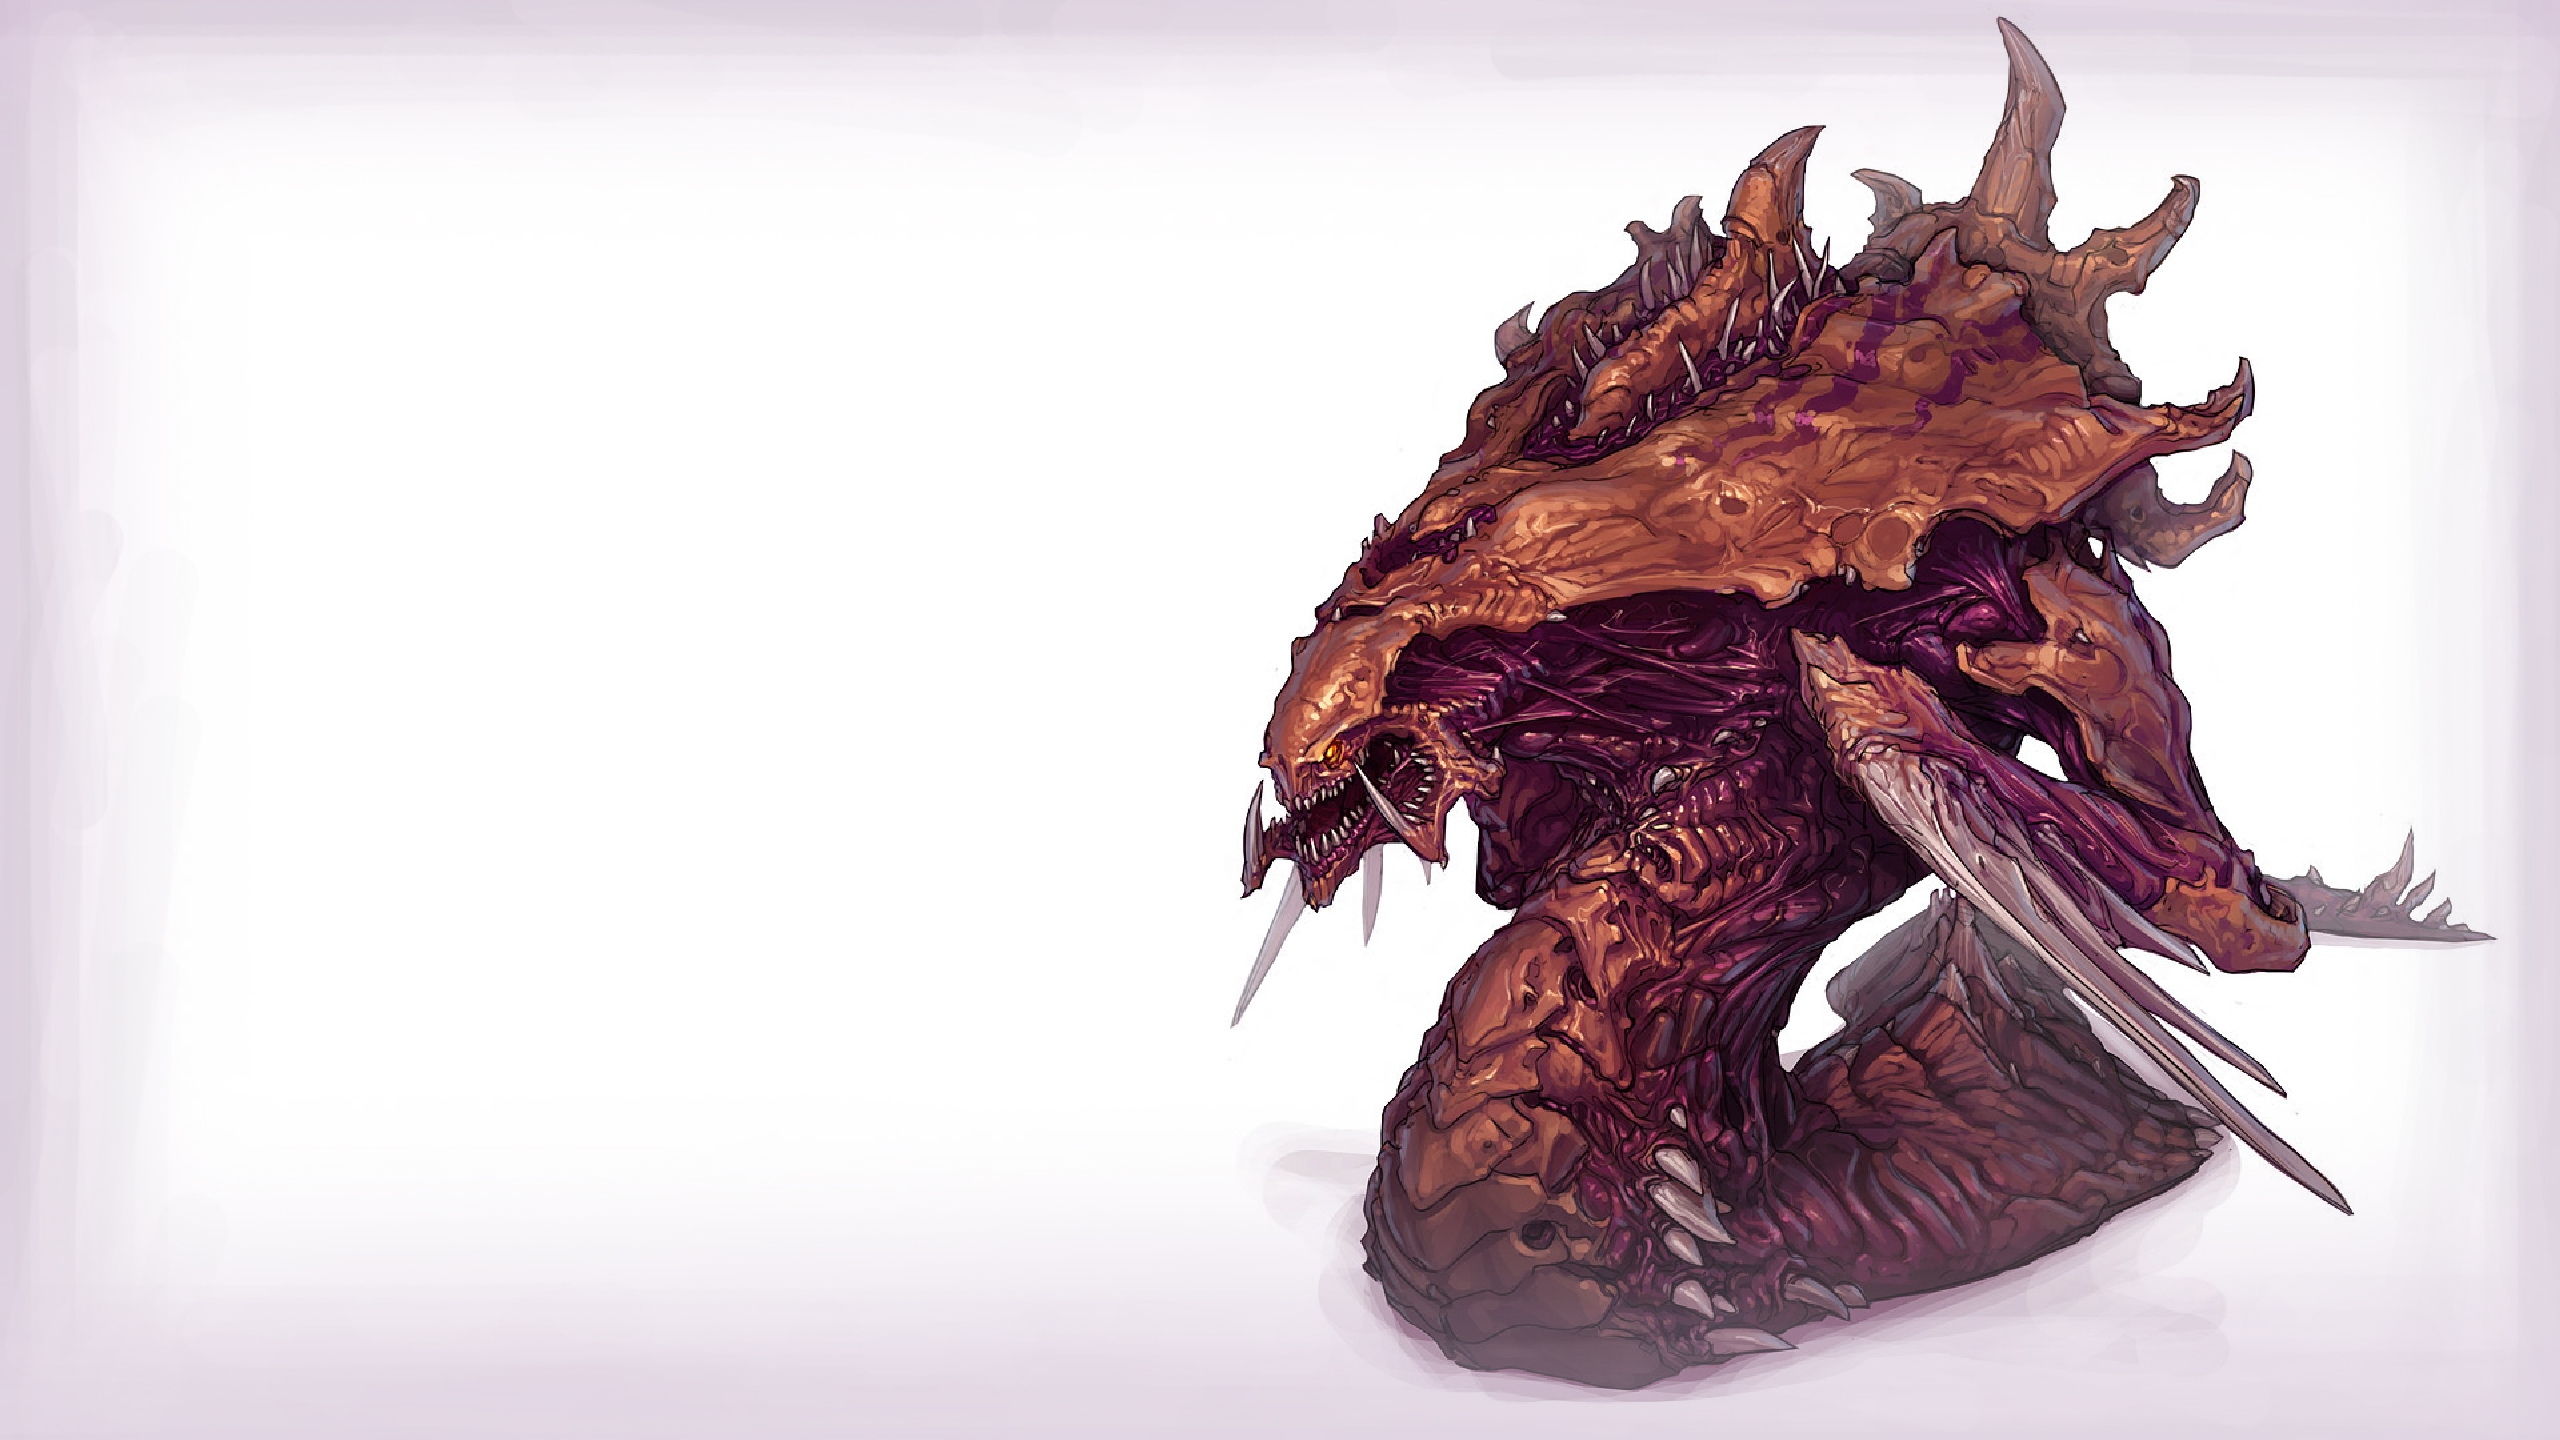 zerg starcraft wallpaper 2560x1440 - photo #21